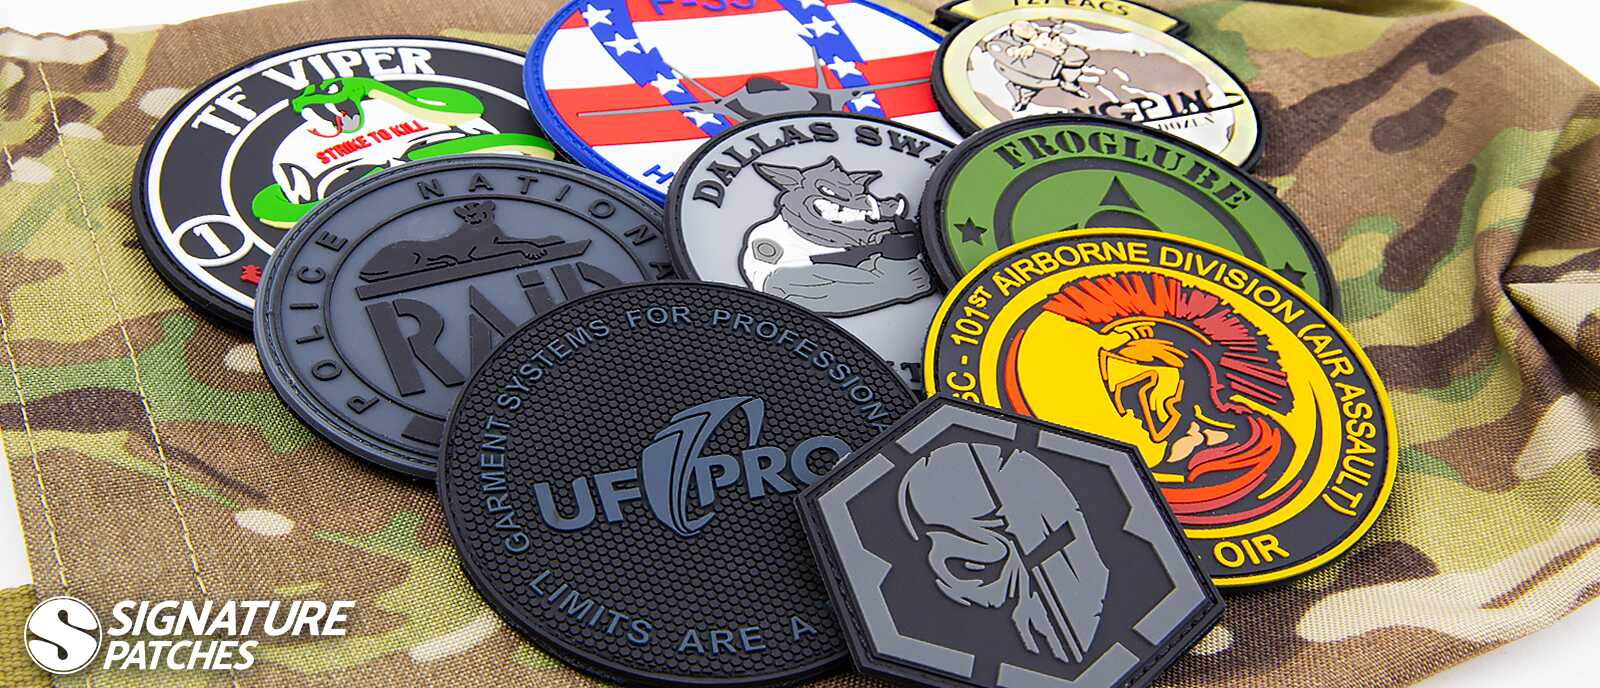 PVC-Patches-morale-patches3